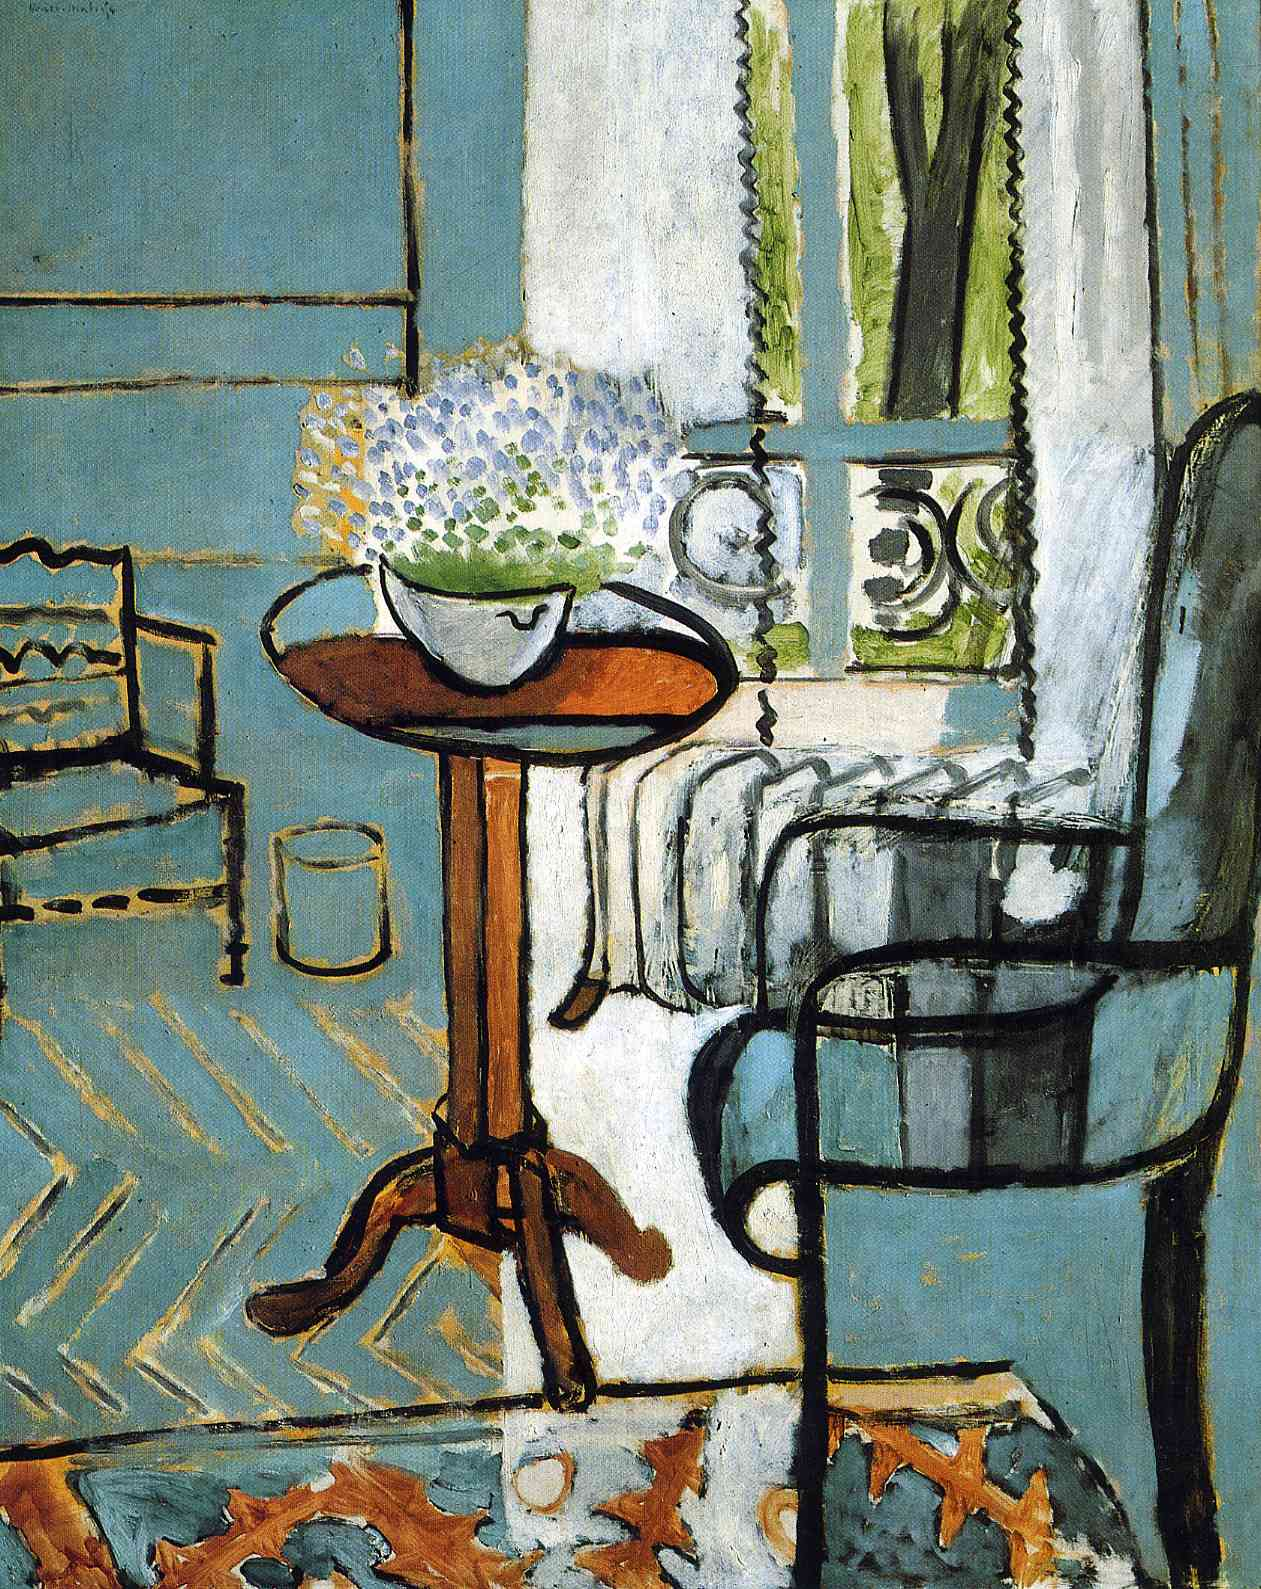 The window henri matisse encyclopedia of for Pierre bonnard la fenetre ouverte